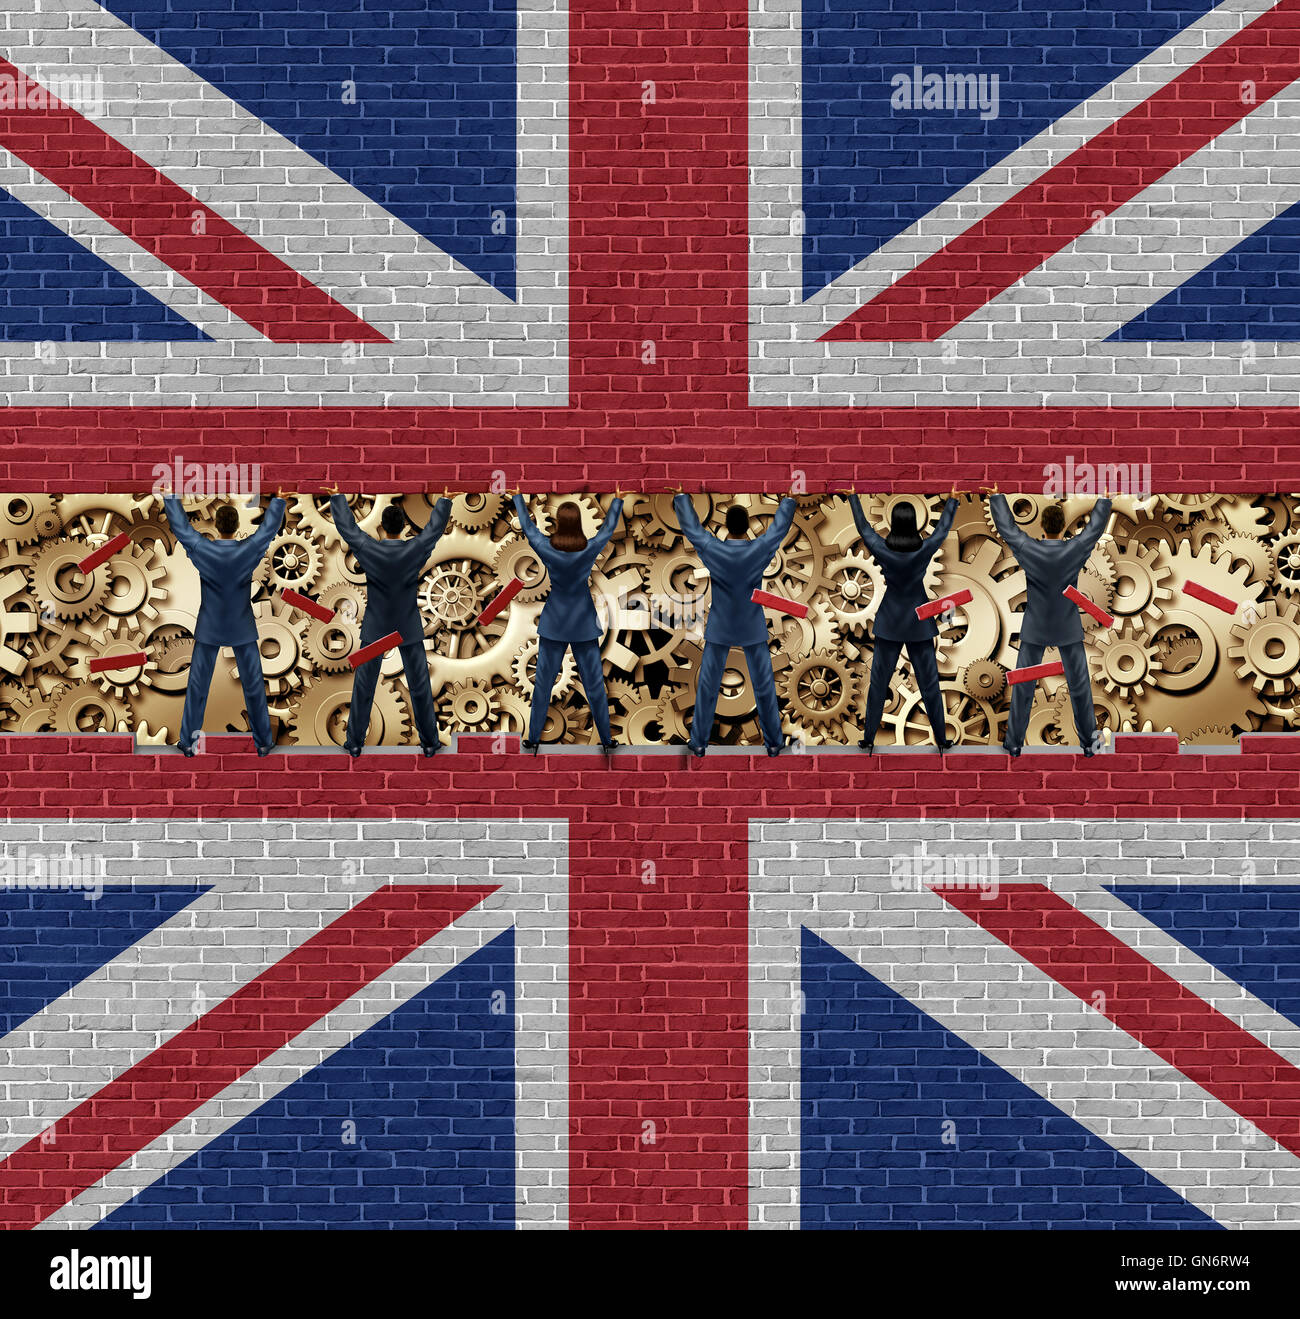 Inside Britain economy of British industry concept as a group of diverse men and women lifting up a brick wall exposing - Stock Image